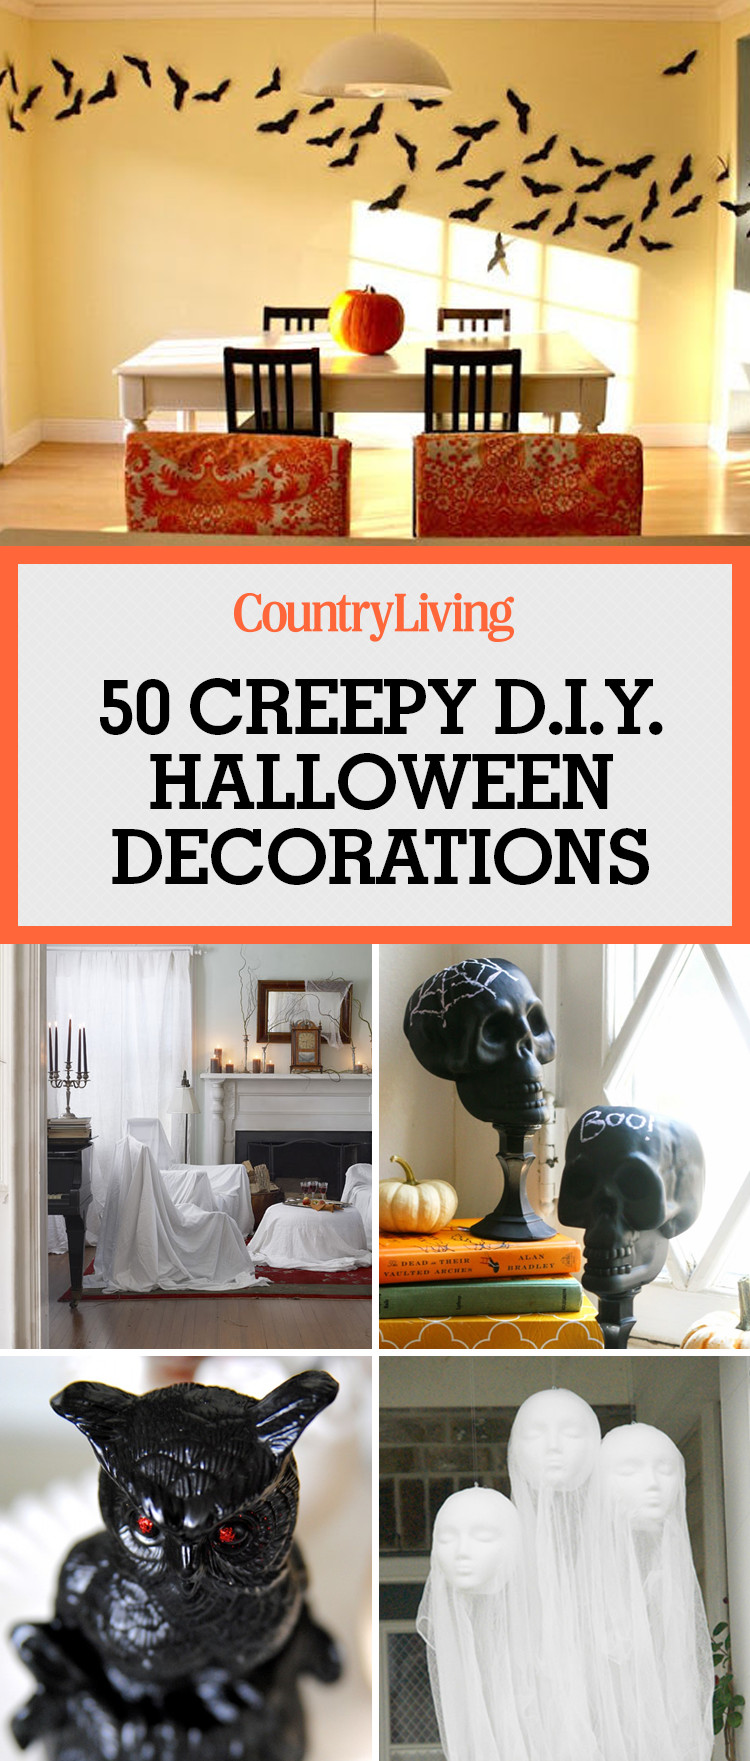 40+ Easy DIY Halloween Decorations - Homemade Do It ...